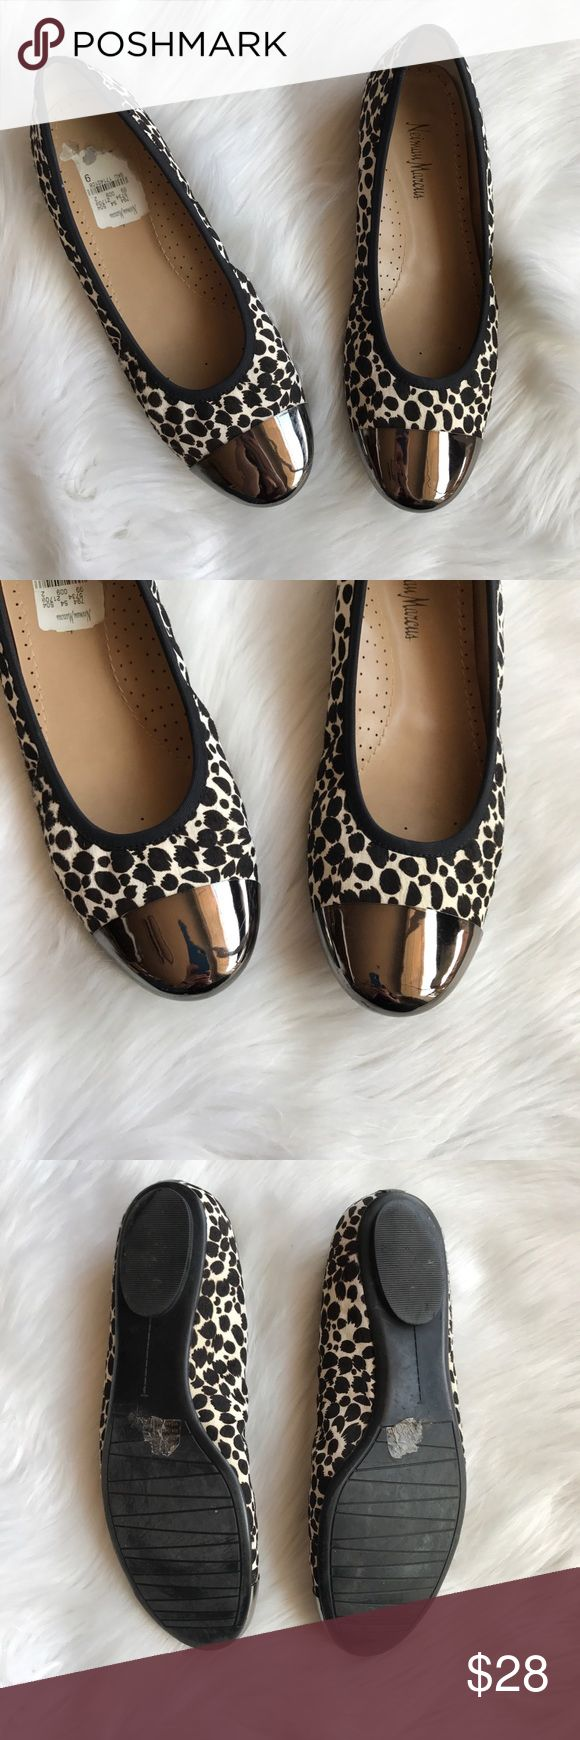 Neiman Marcus Calf hair cap toes ballet flats These adorable flats are perfect for the office or a Saturday morning running errands! These are in excellent used condition, have a cute cap toe with a calf hair like exterior. Size 9. Neiman Marcus Shoes Flats & Loafers